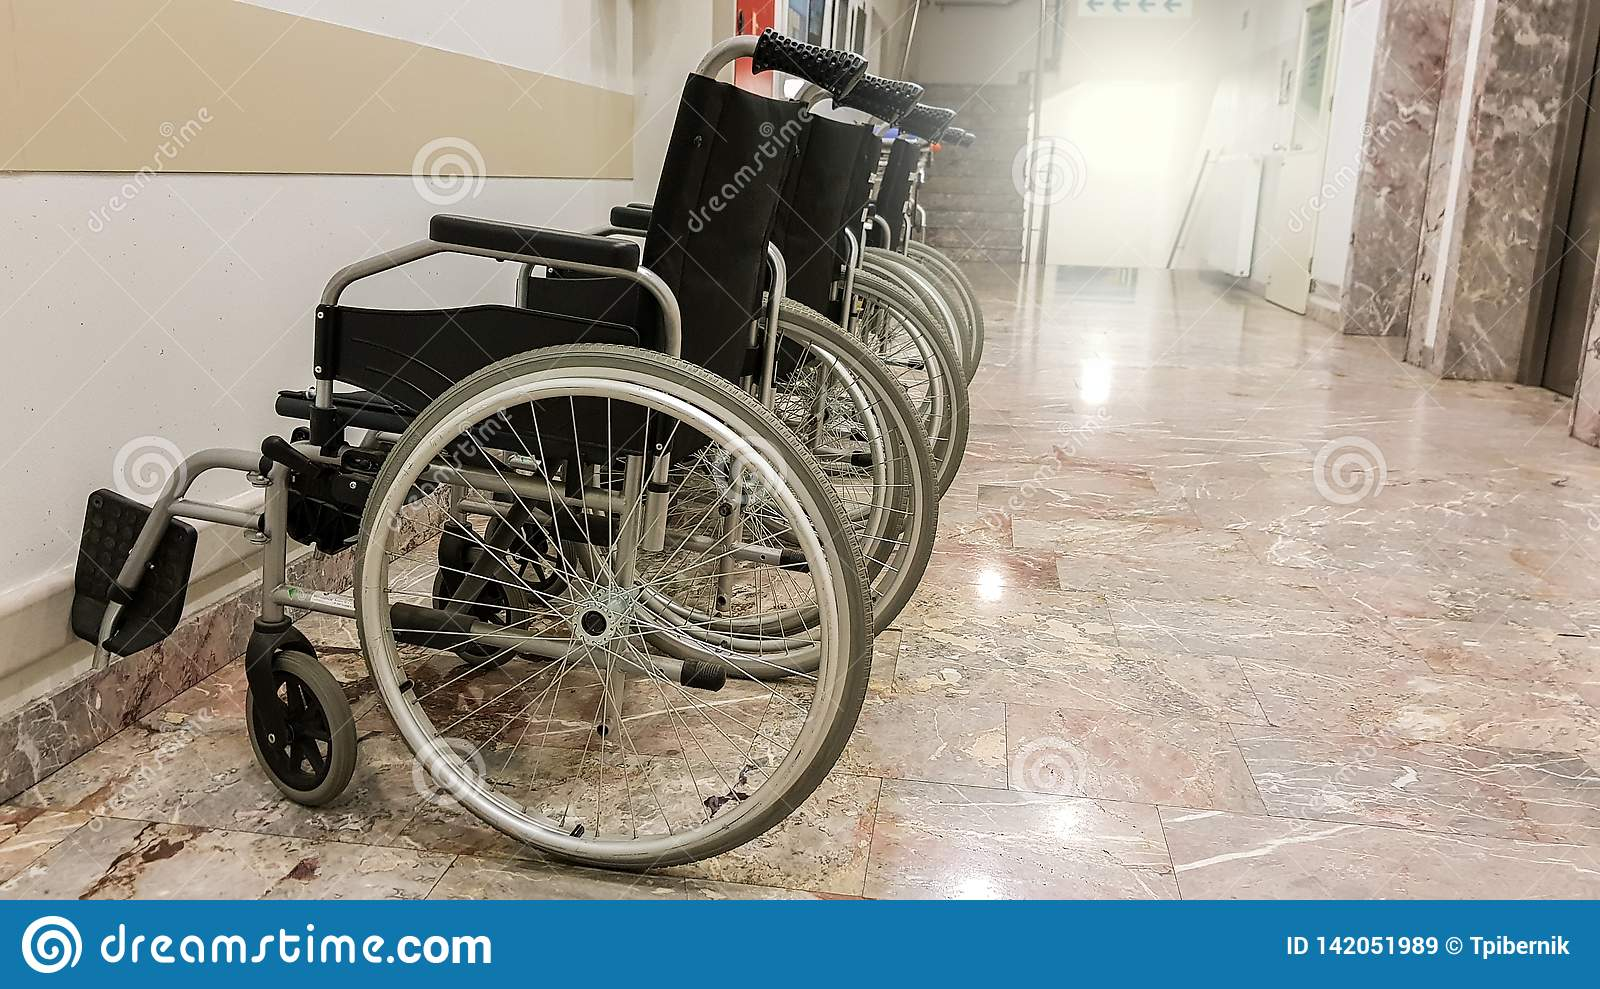 Group of empty wheelchairs on a hallway ready for patients